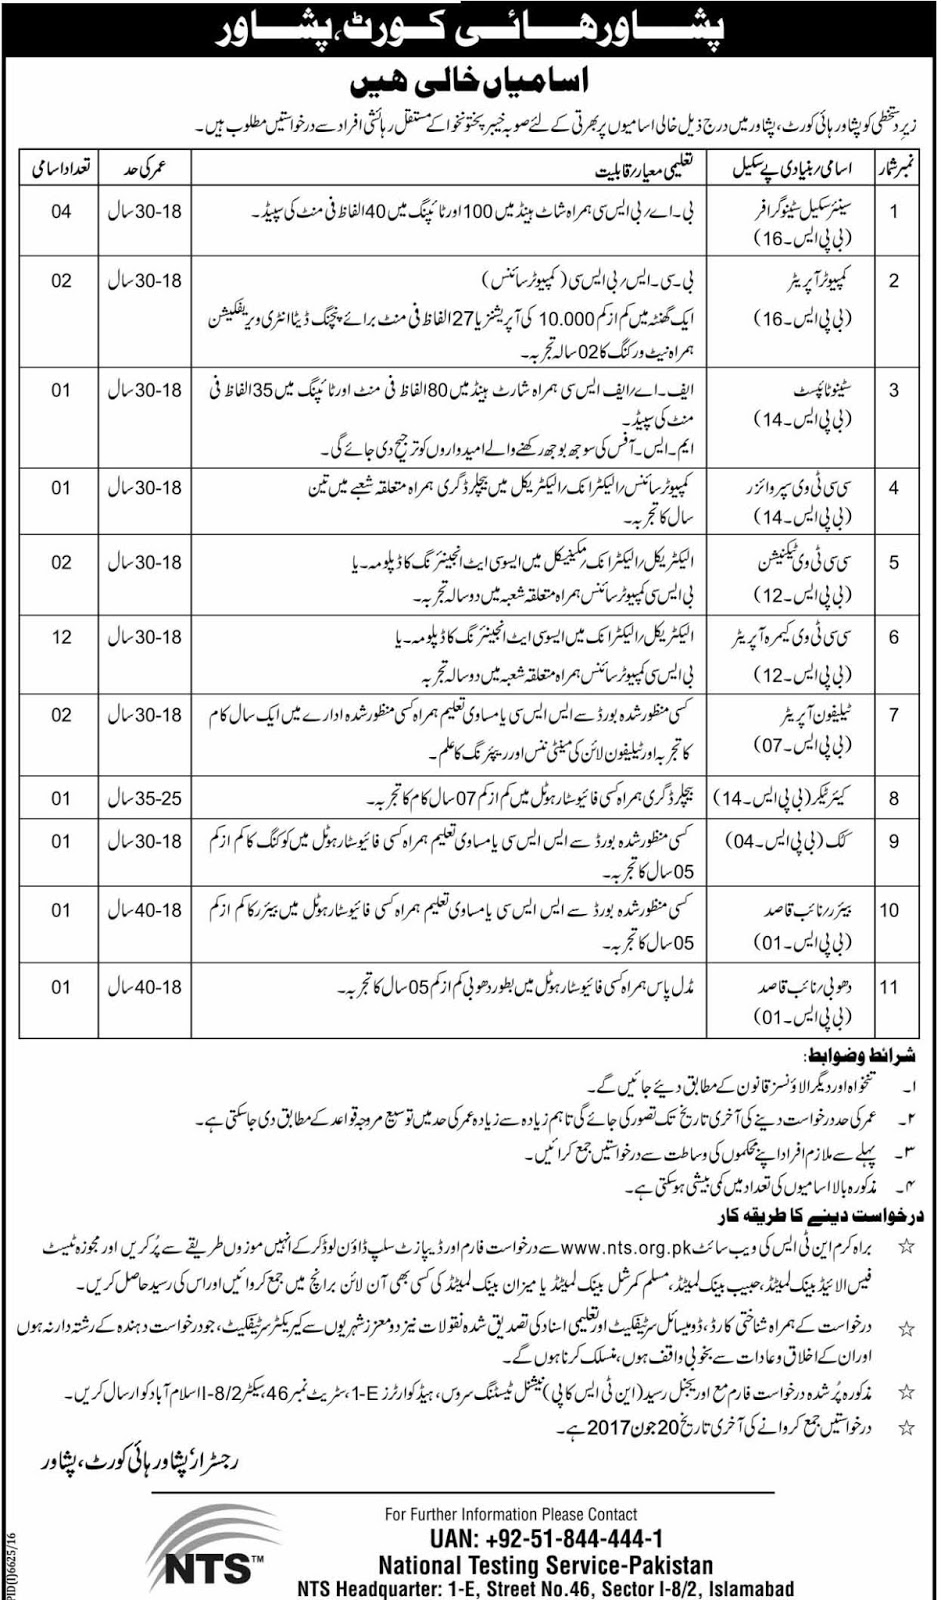 Peshawar High Court Jobs kpk 6 June 2017